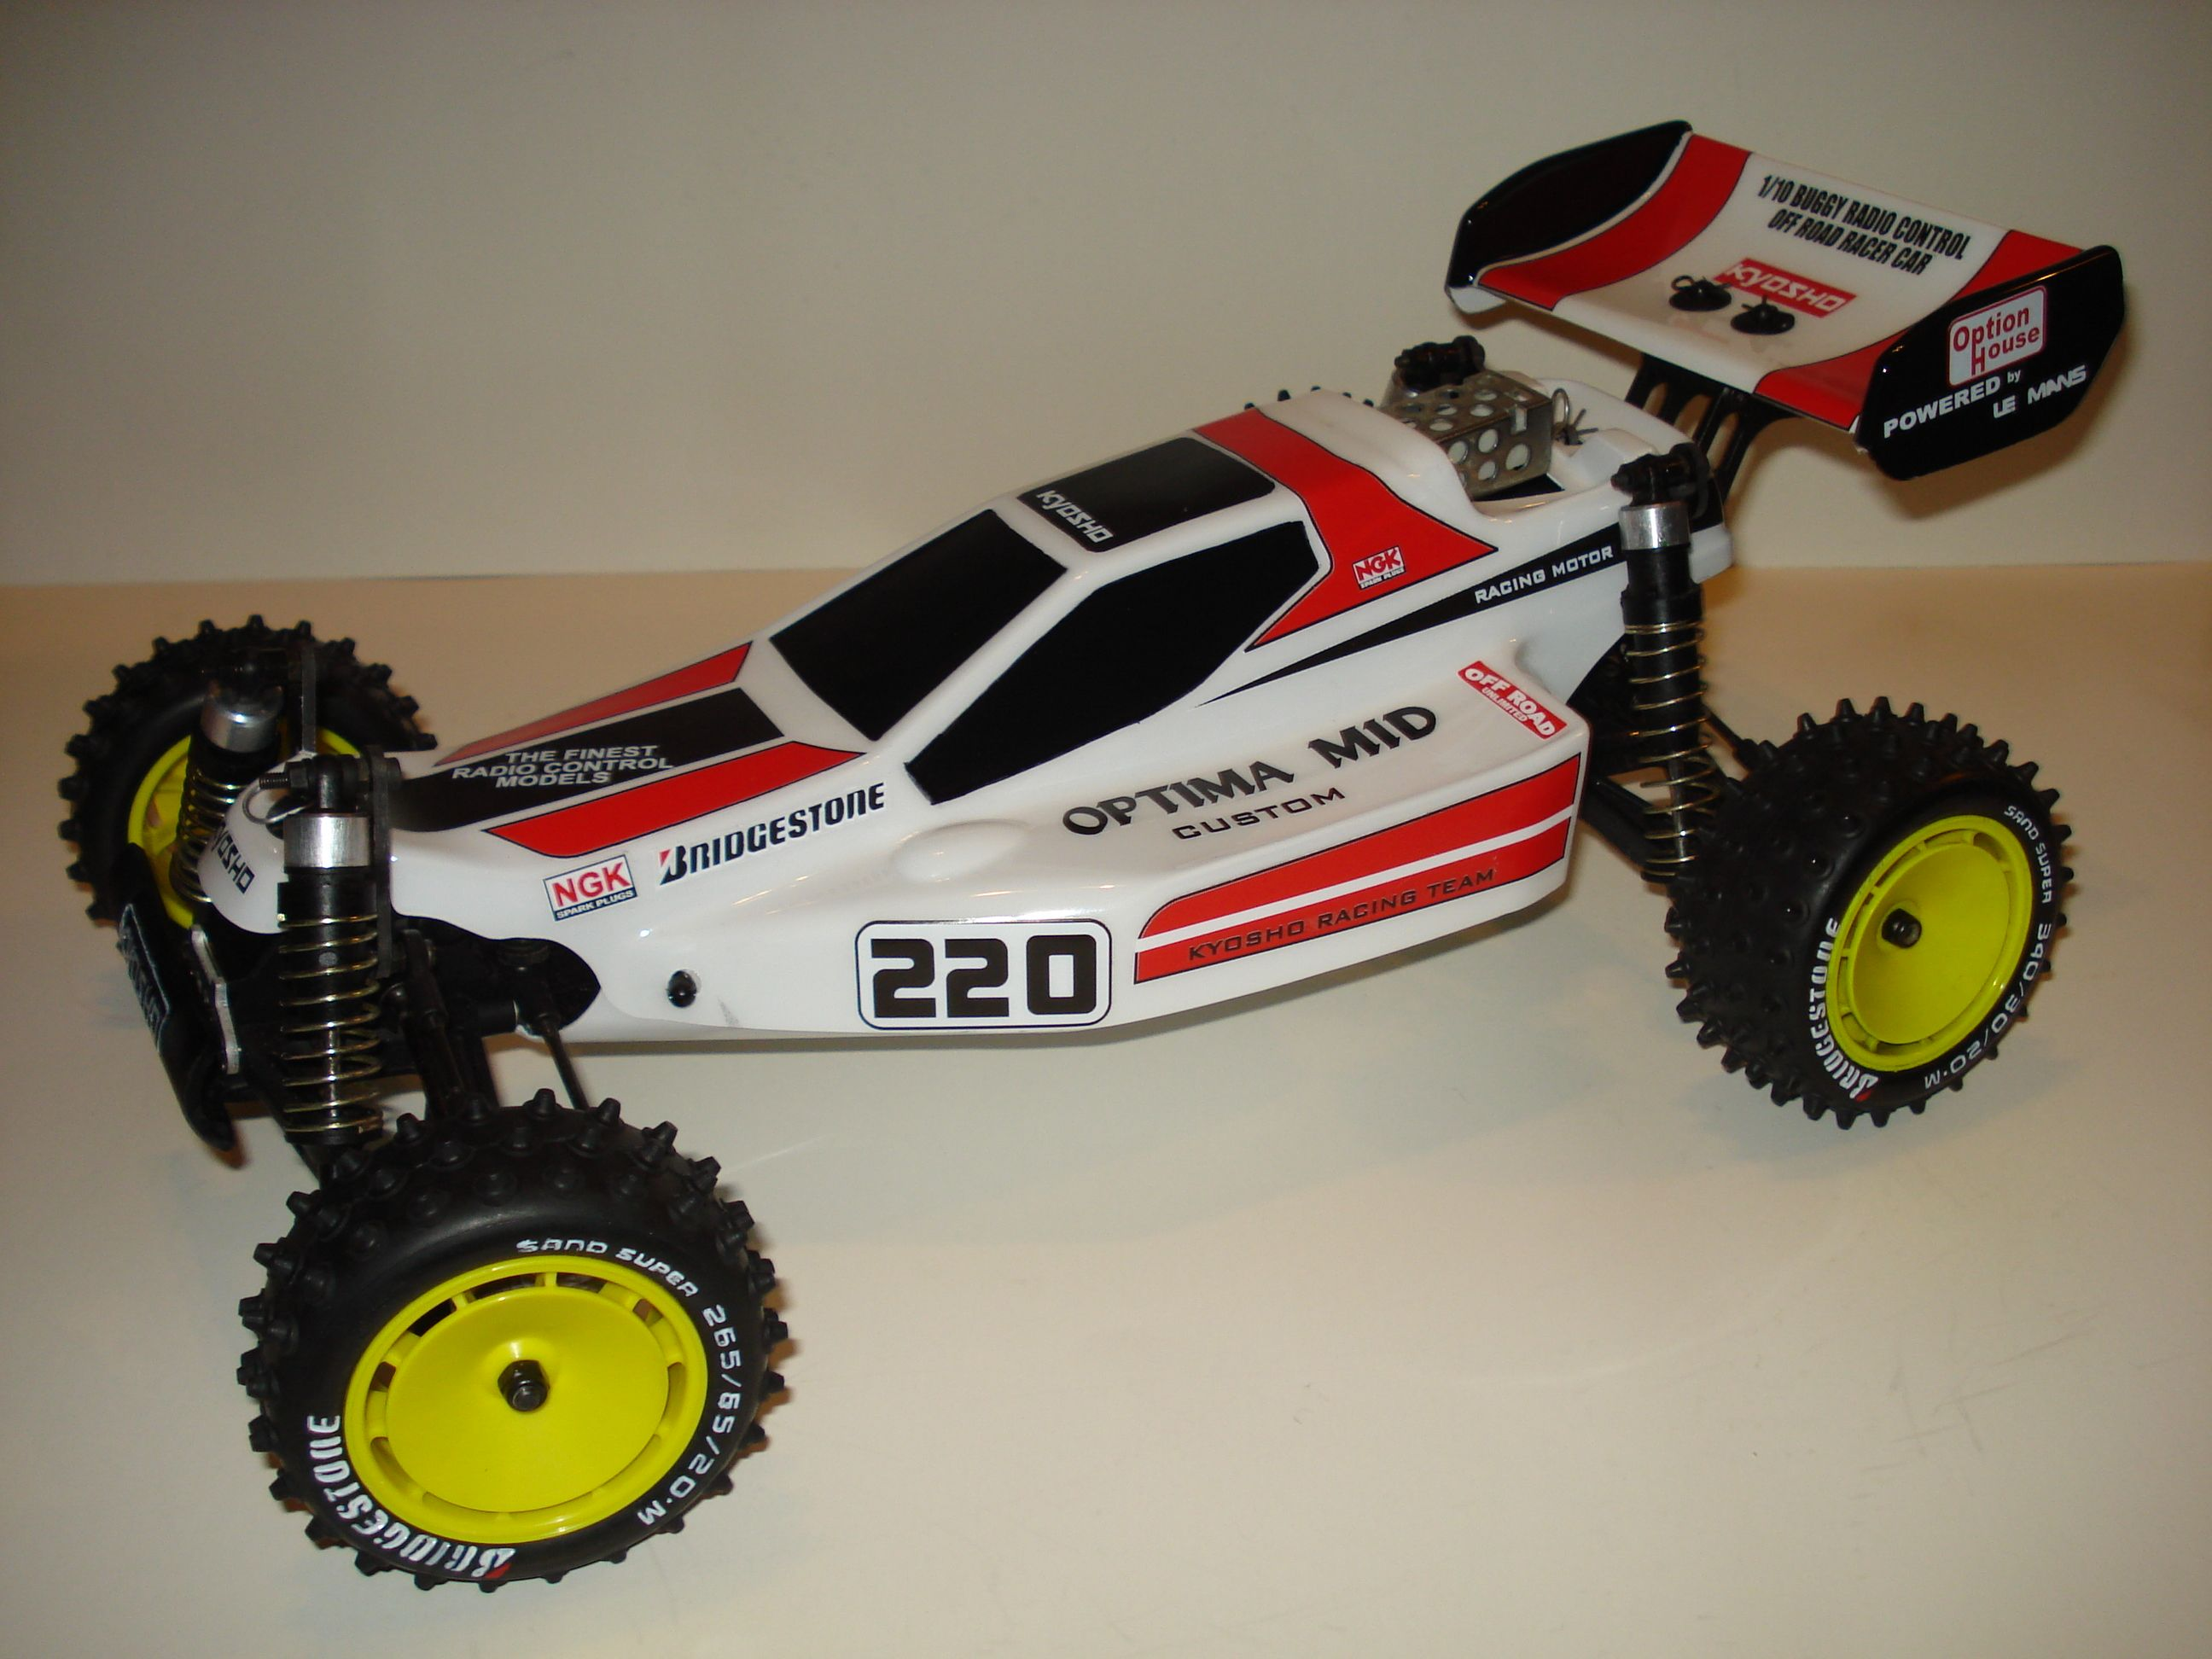 Kyosho Optima Mid Custom 1989 radiocontrol